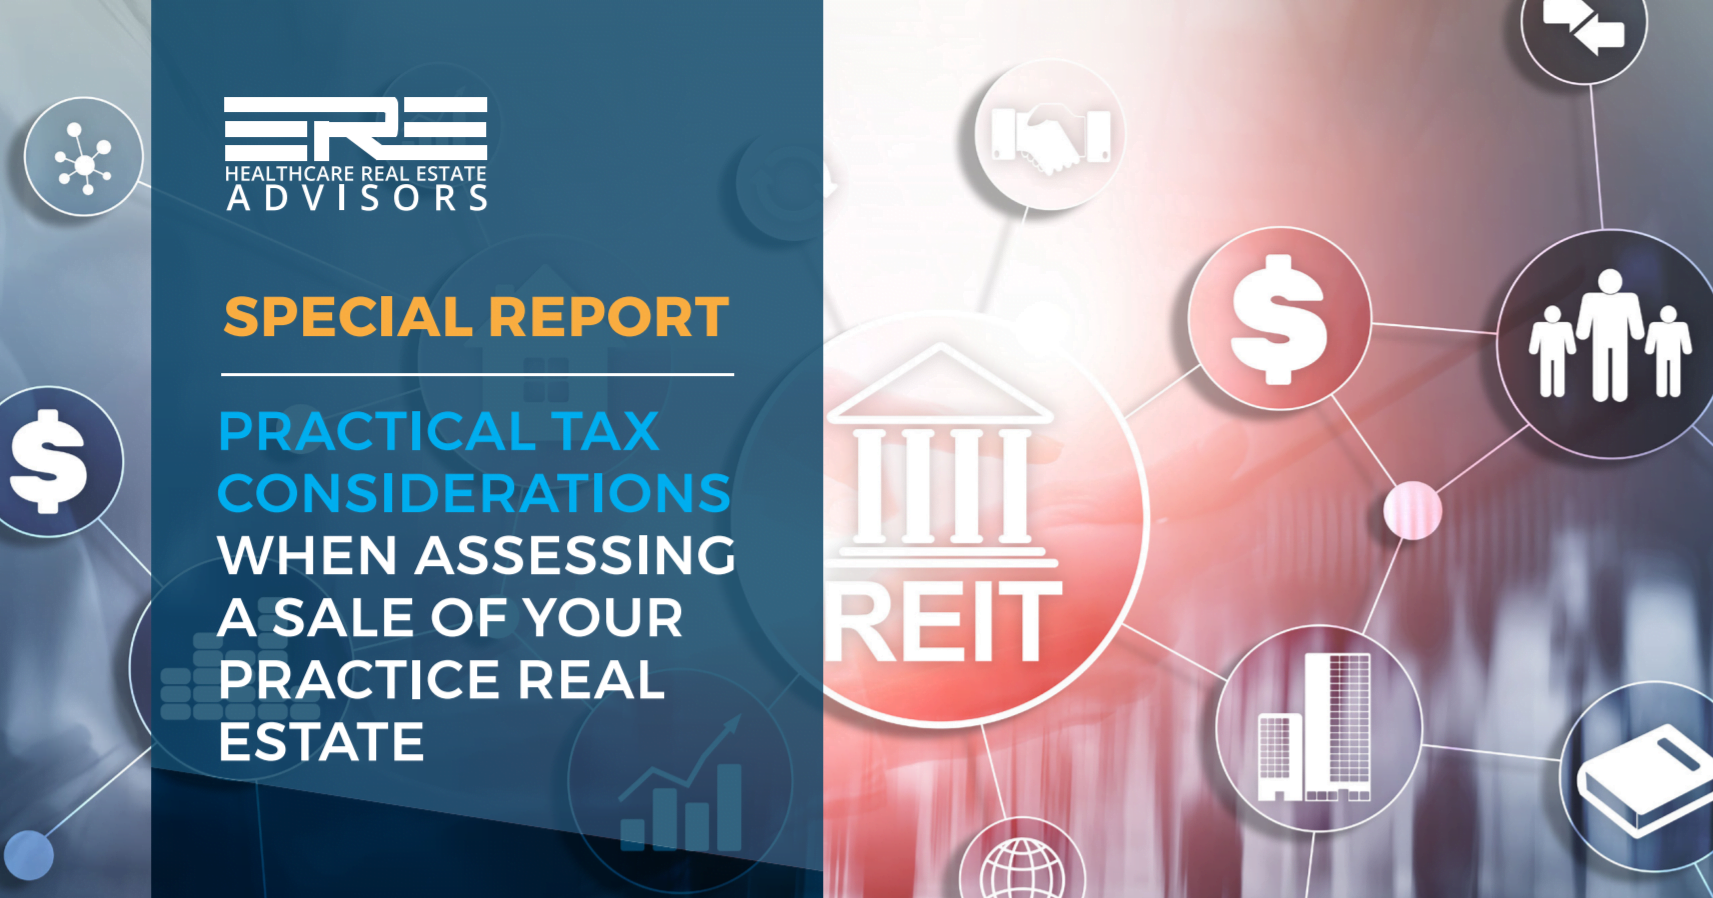 ERE Healthcare Real Estate Advisors Explores the Lesser-Known Tax Advantages When Participating in a Sale and Leaseback Transaction